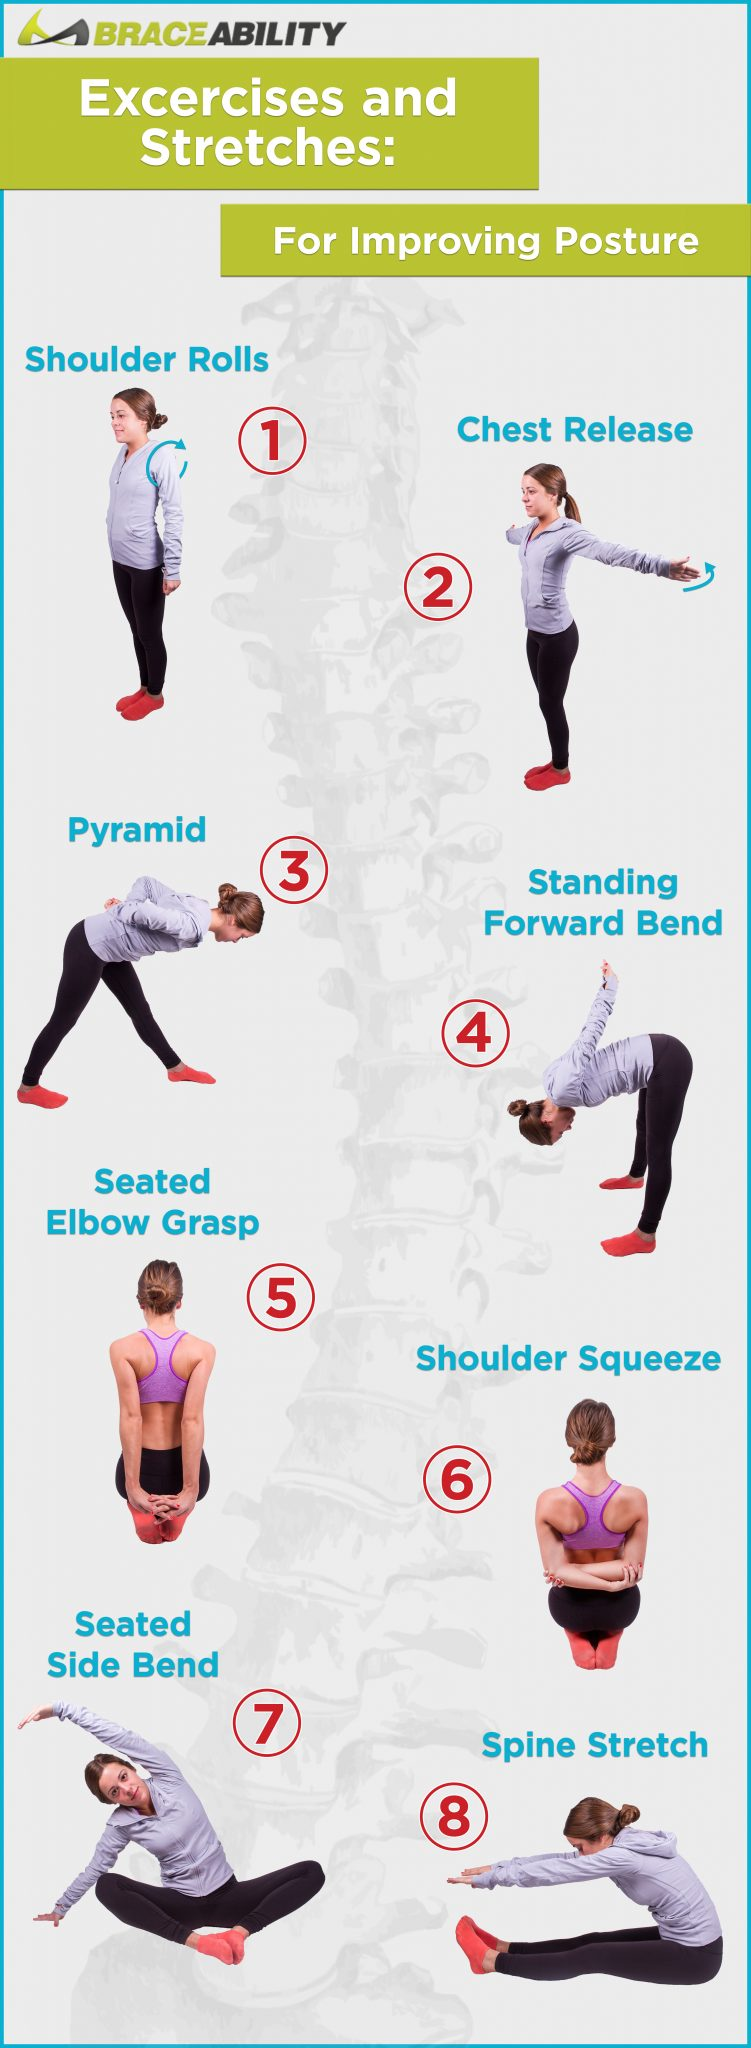 easy posture stretches and exercises for improving posture naturally